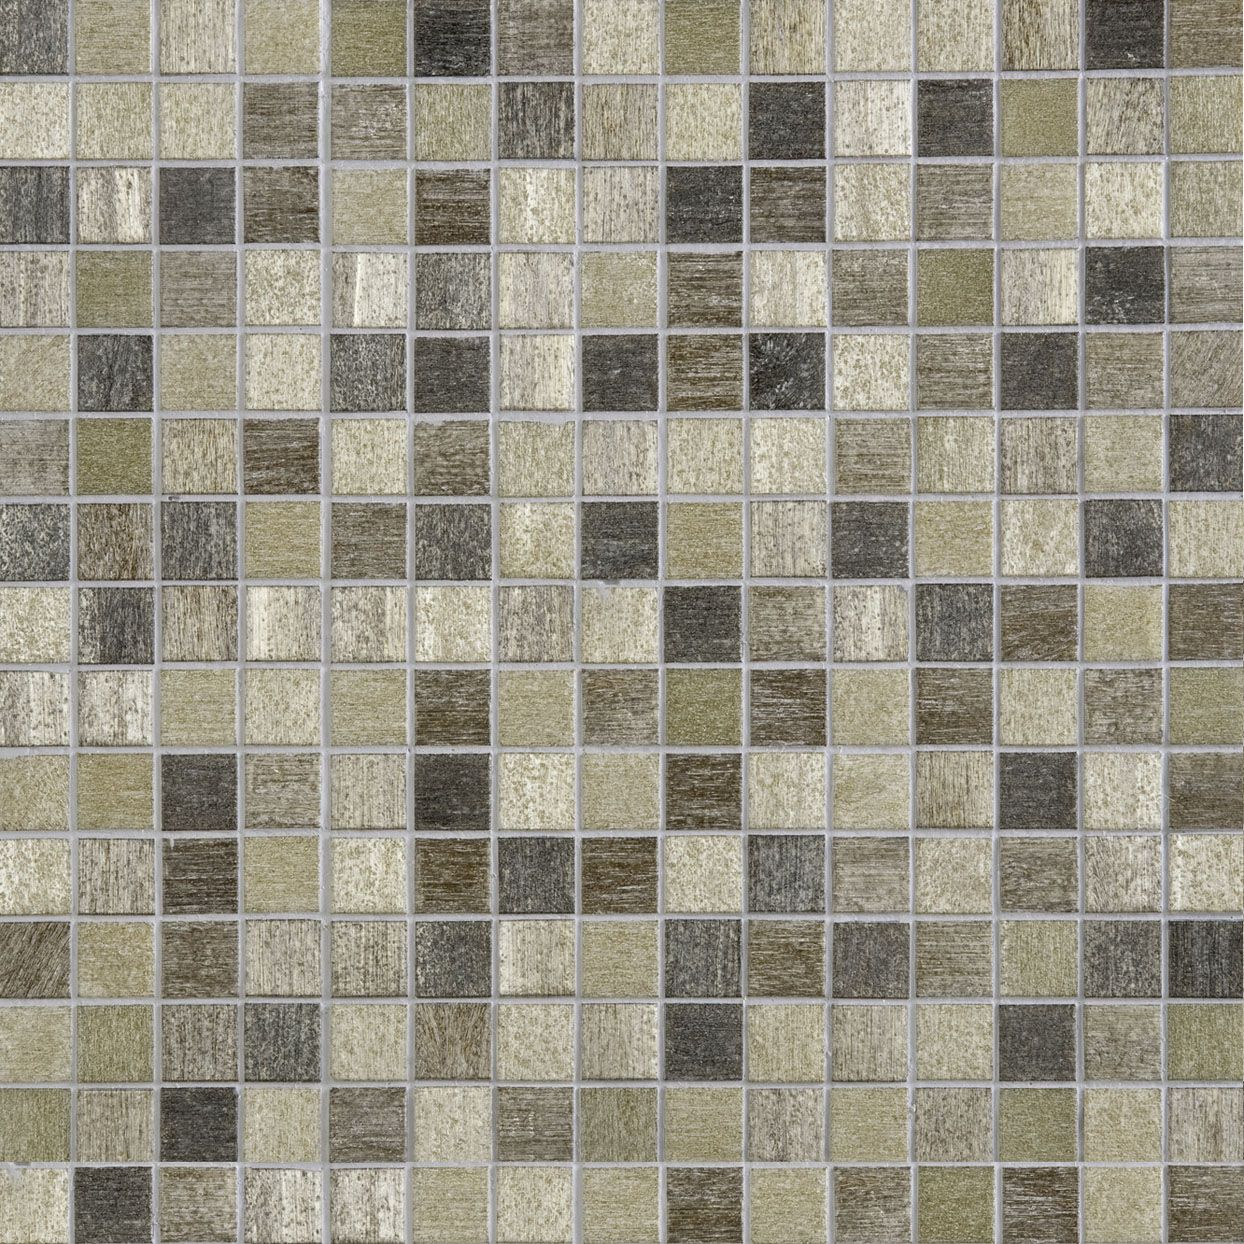 New Gl Mosaic Tiles Manufactured From Recycled